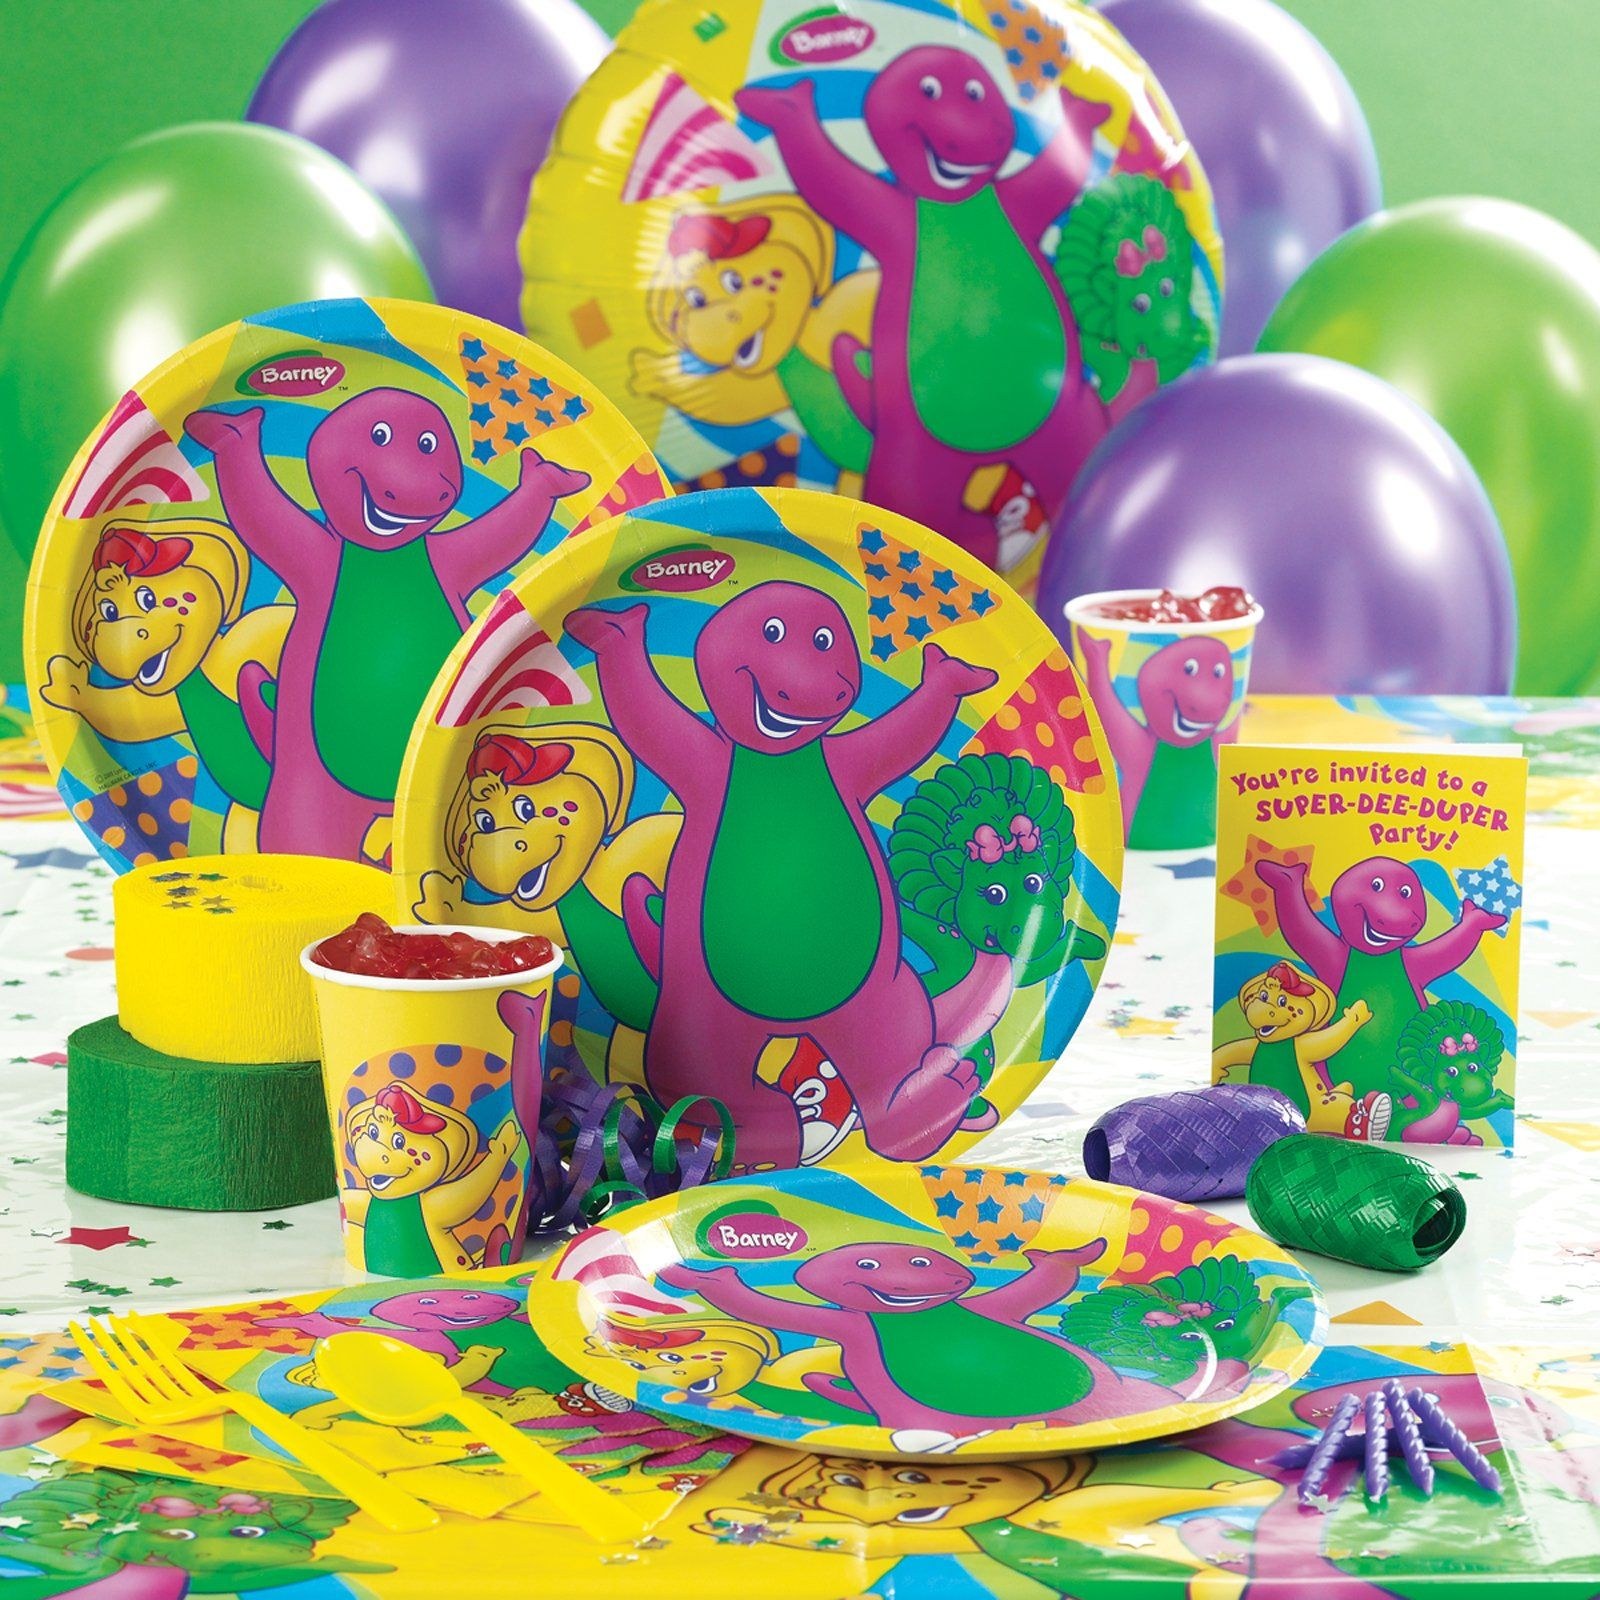 2 Year Birthday Themes Barney Friends Theme Kids Birthday Party Ideas Pinterest